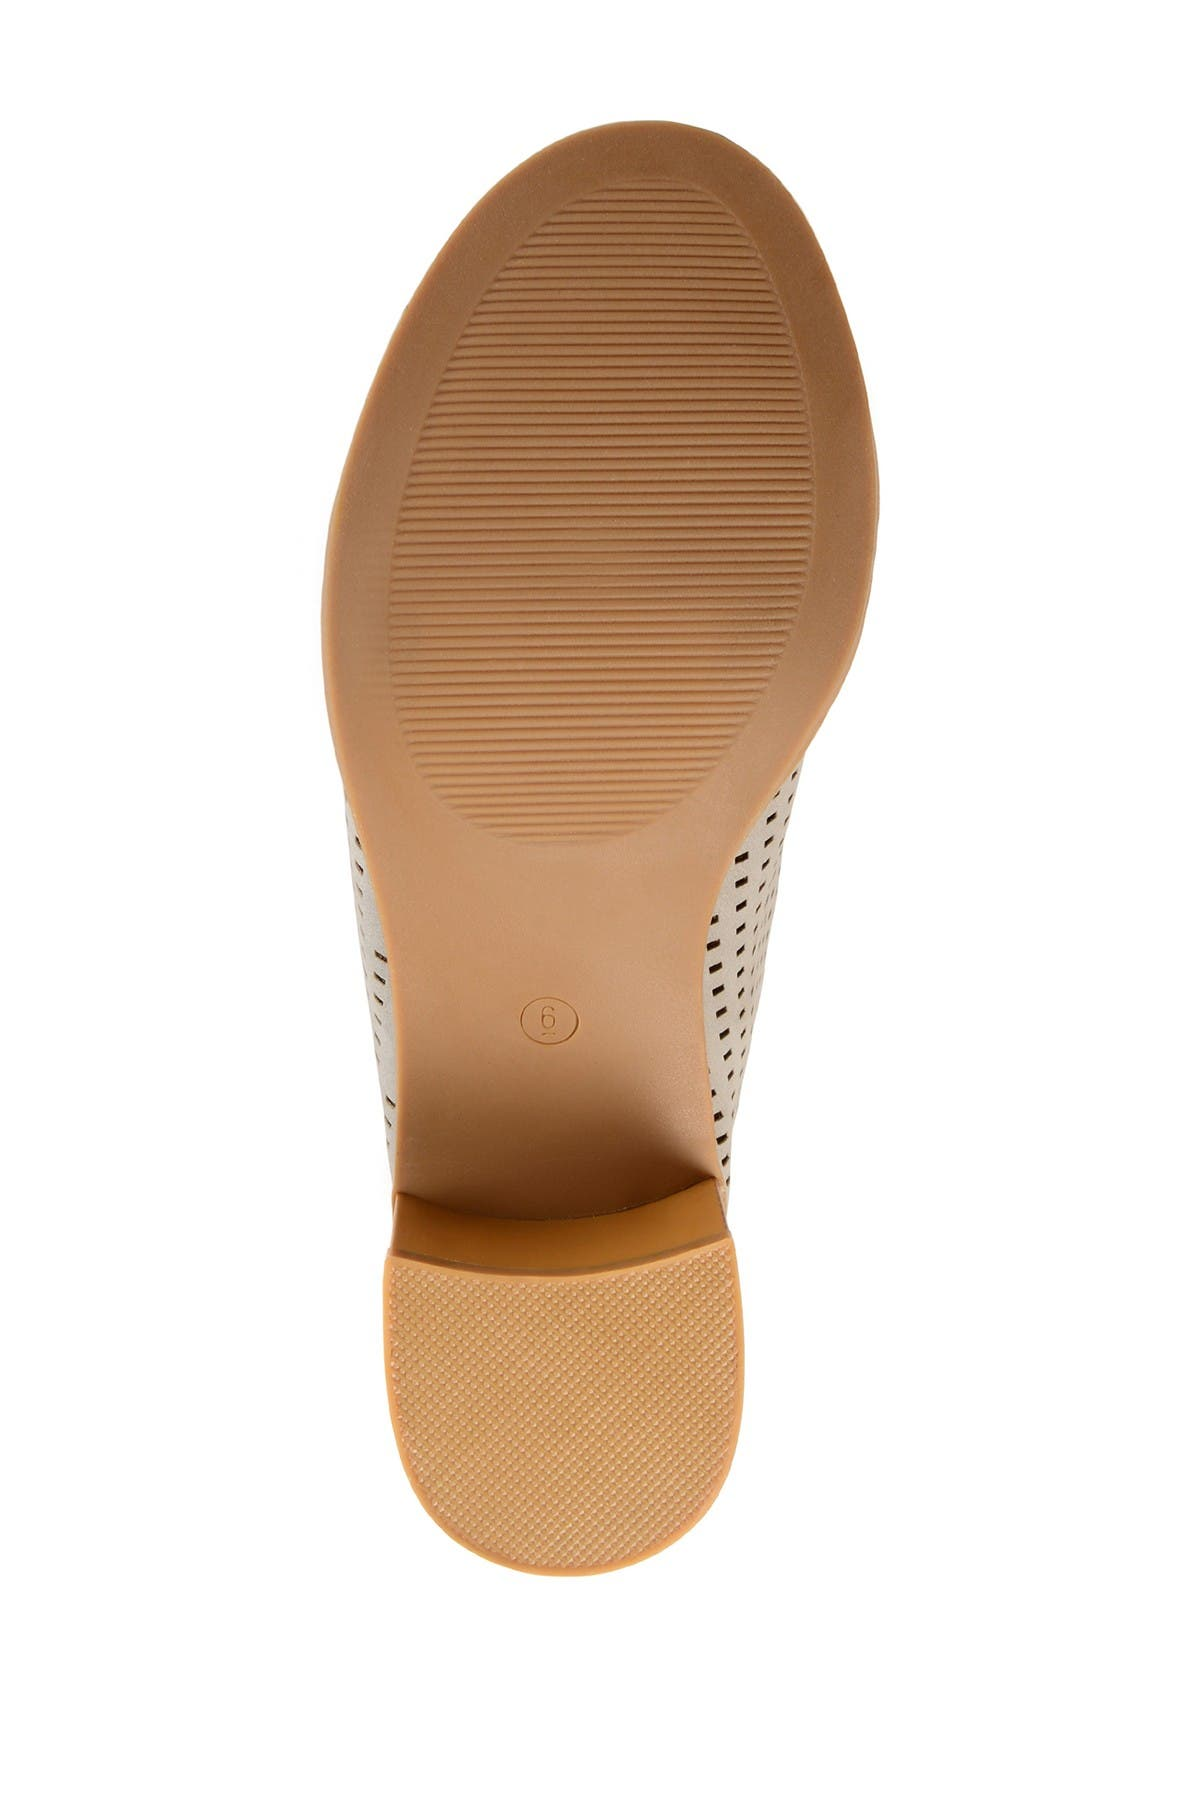 Image of JOURNEE Collection Ziff Perforated Mule